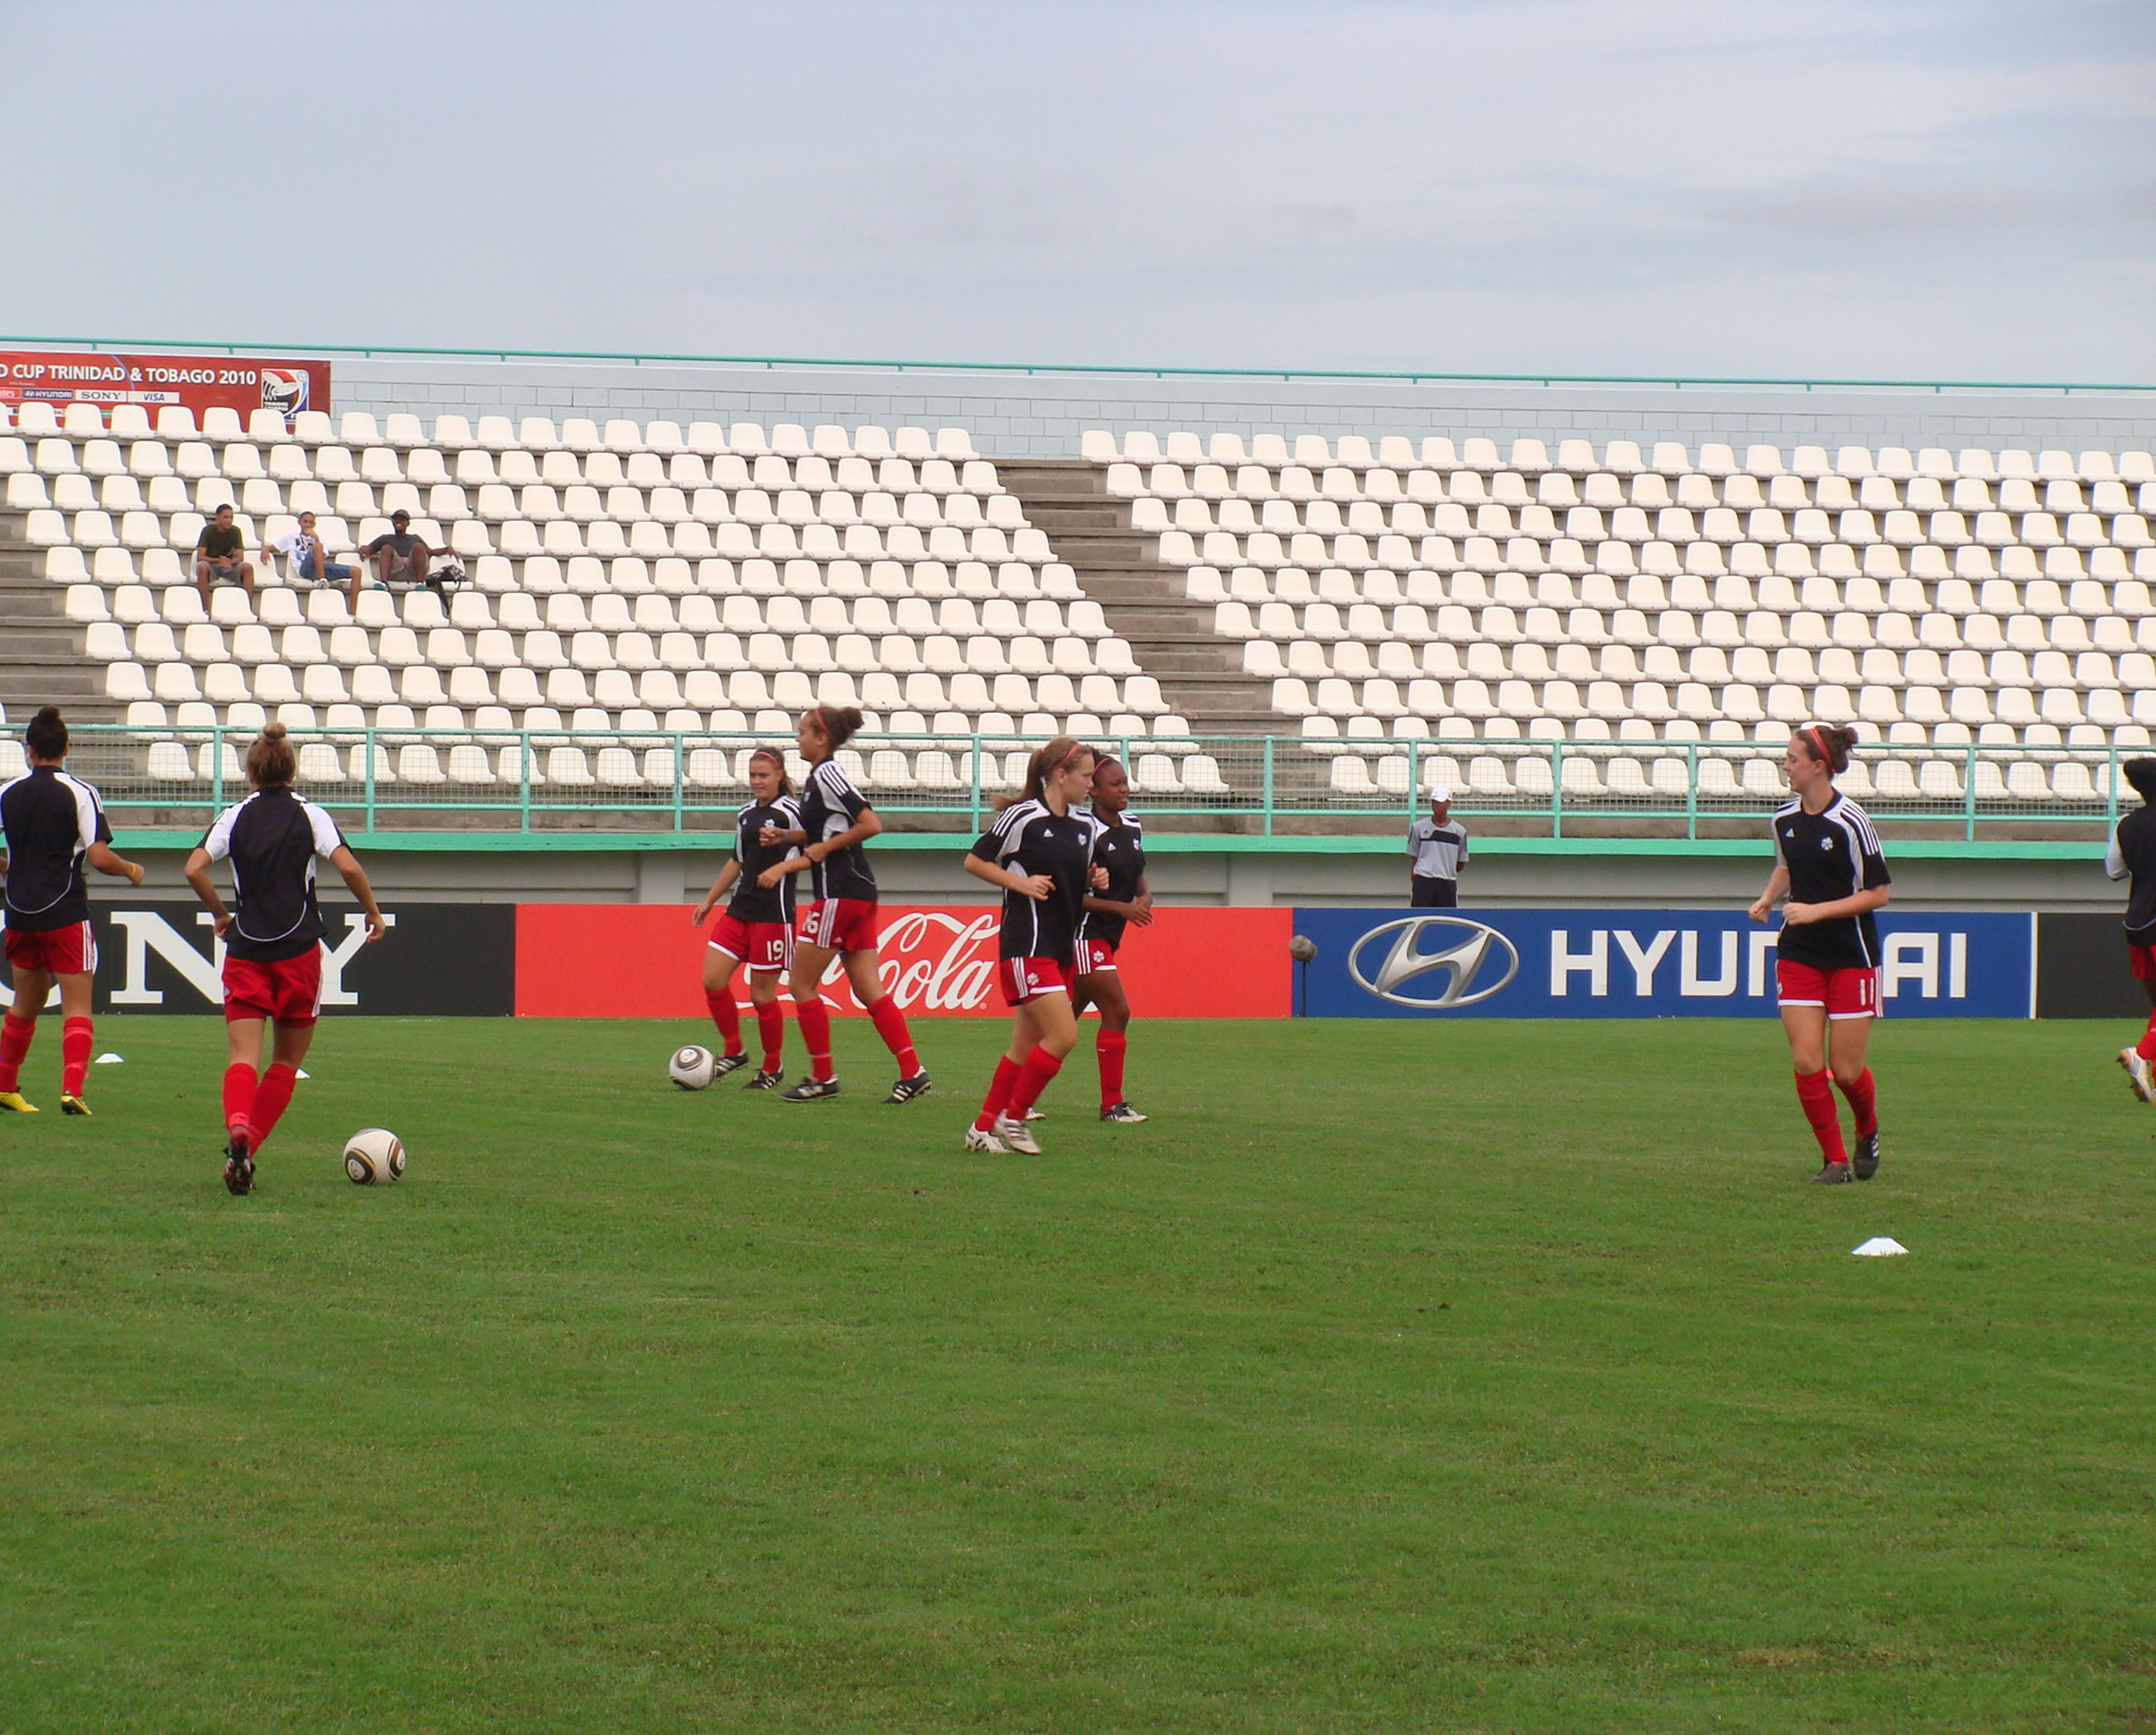 20100909_canw17_warmup